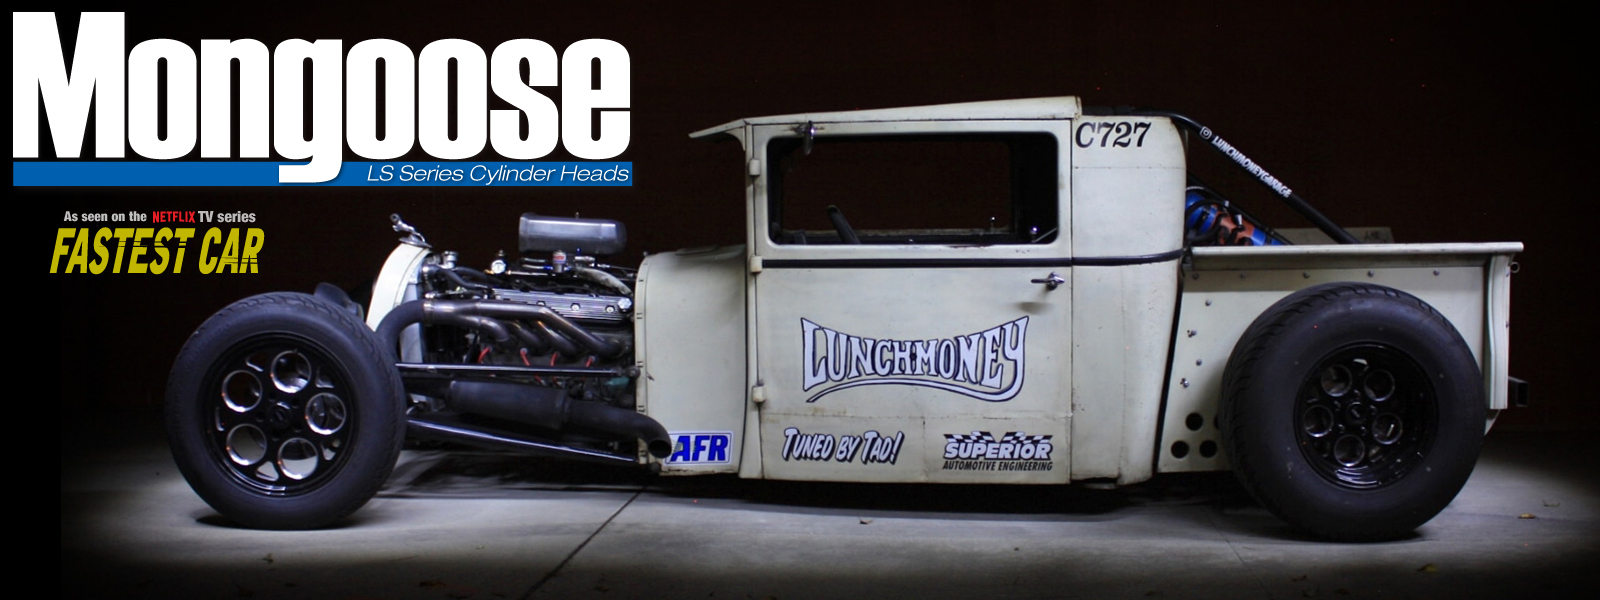 Corey Caouette - Lunch Money Garage with AFR LS1 Mongoose Heads